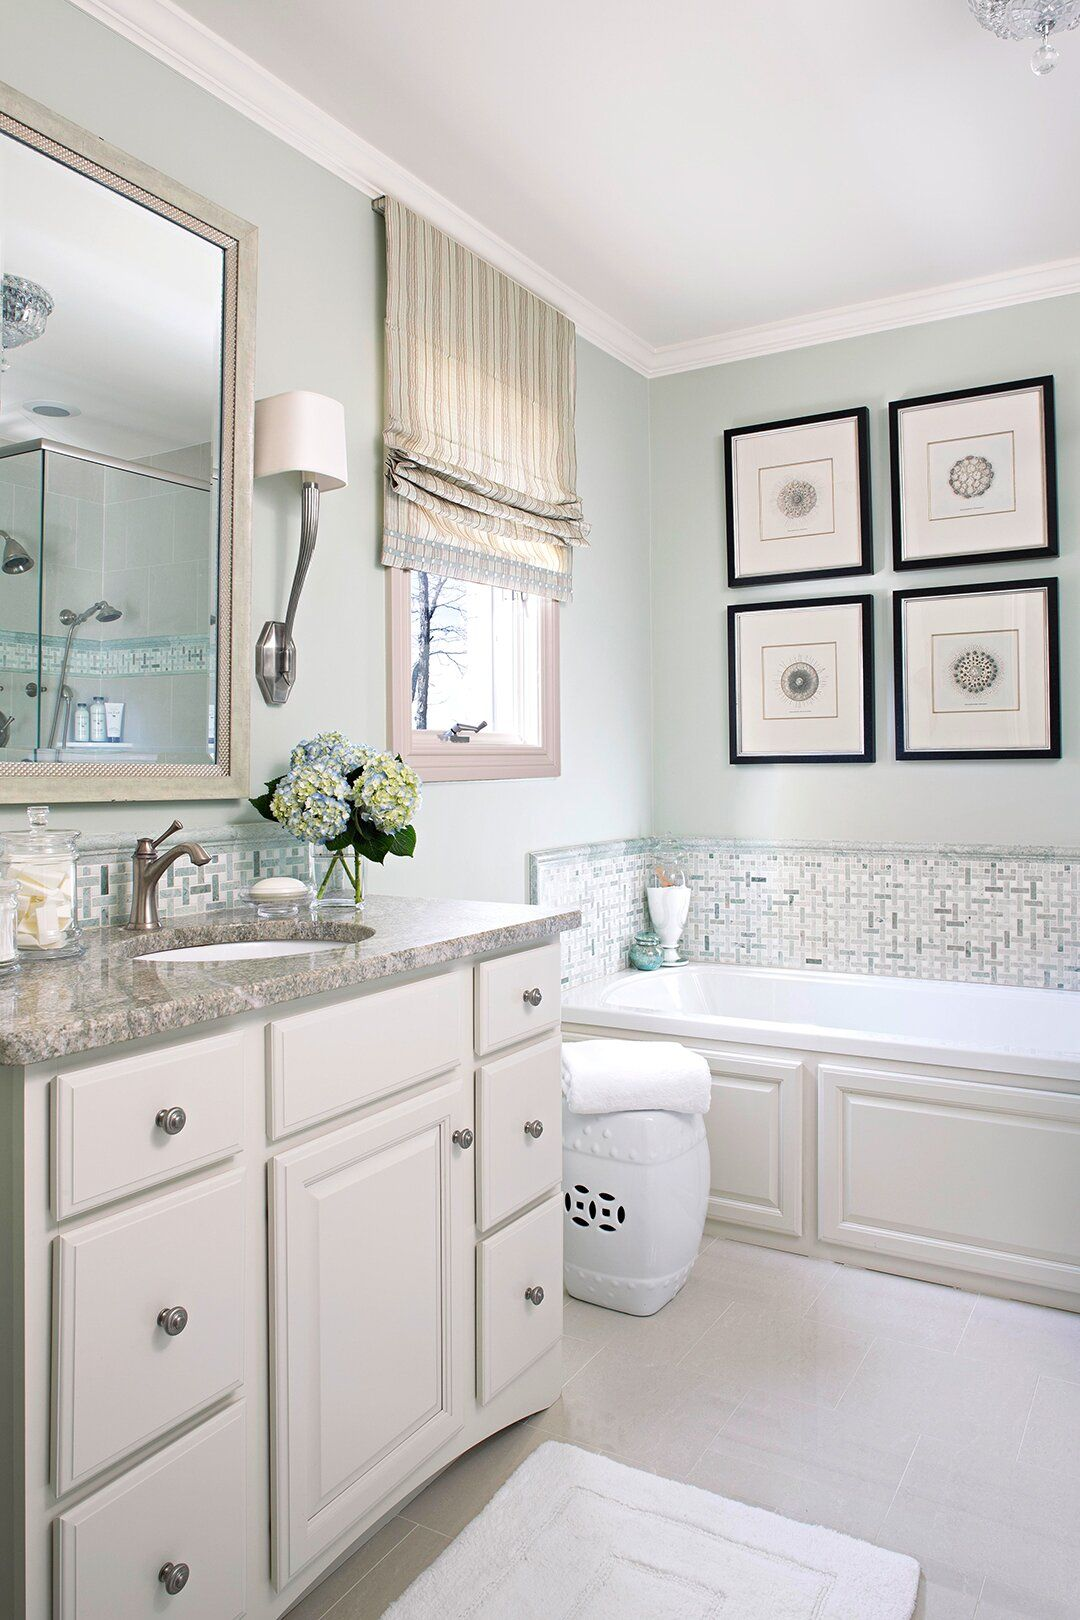 The 12 Best Bathroom Paint Colors Our Editors Swear By Best Bathroom Paint Colors Best Bathroom Colors Bathroom Wall Colors